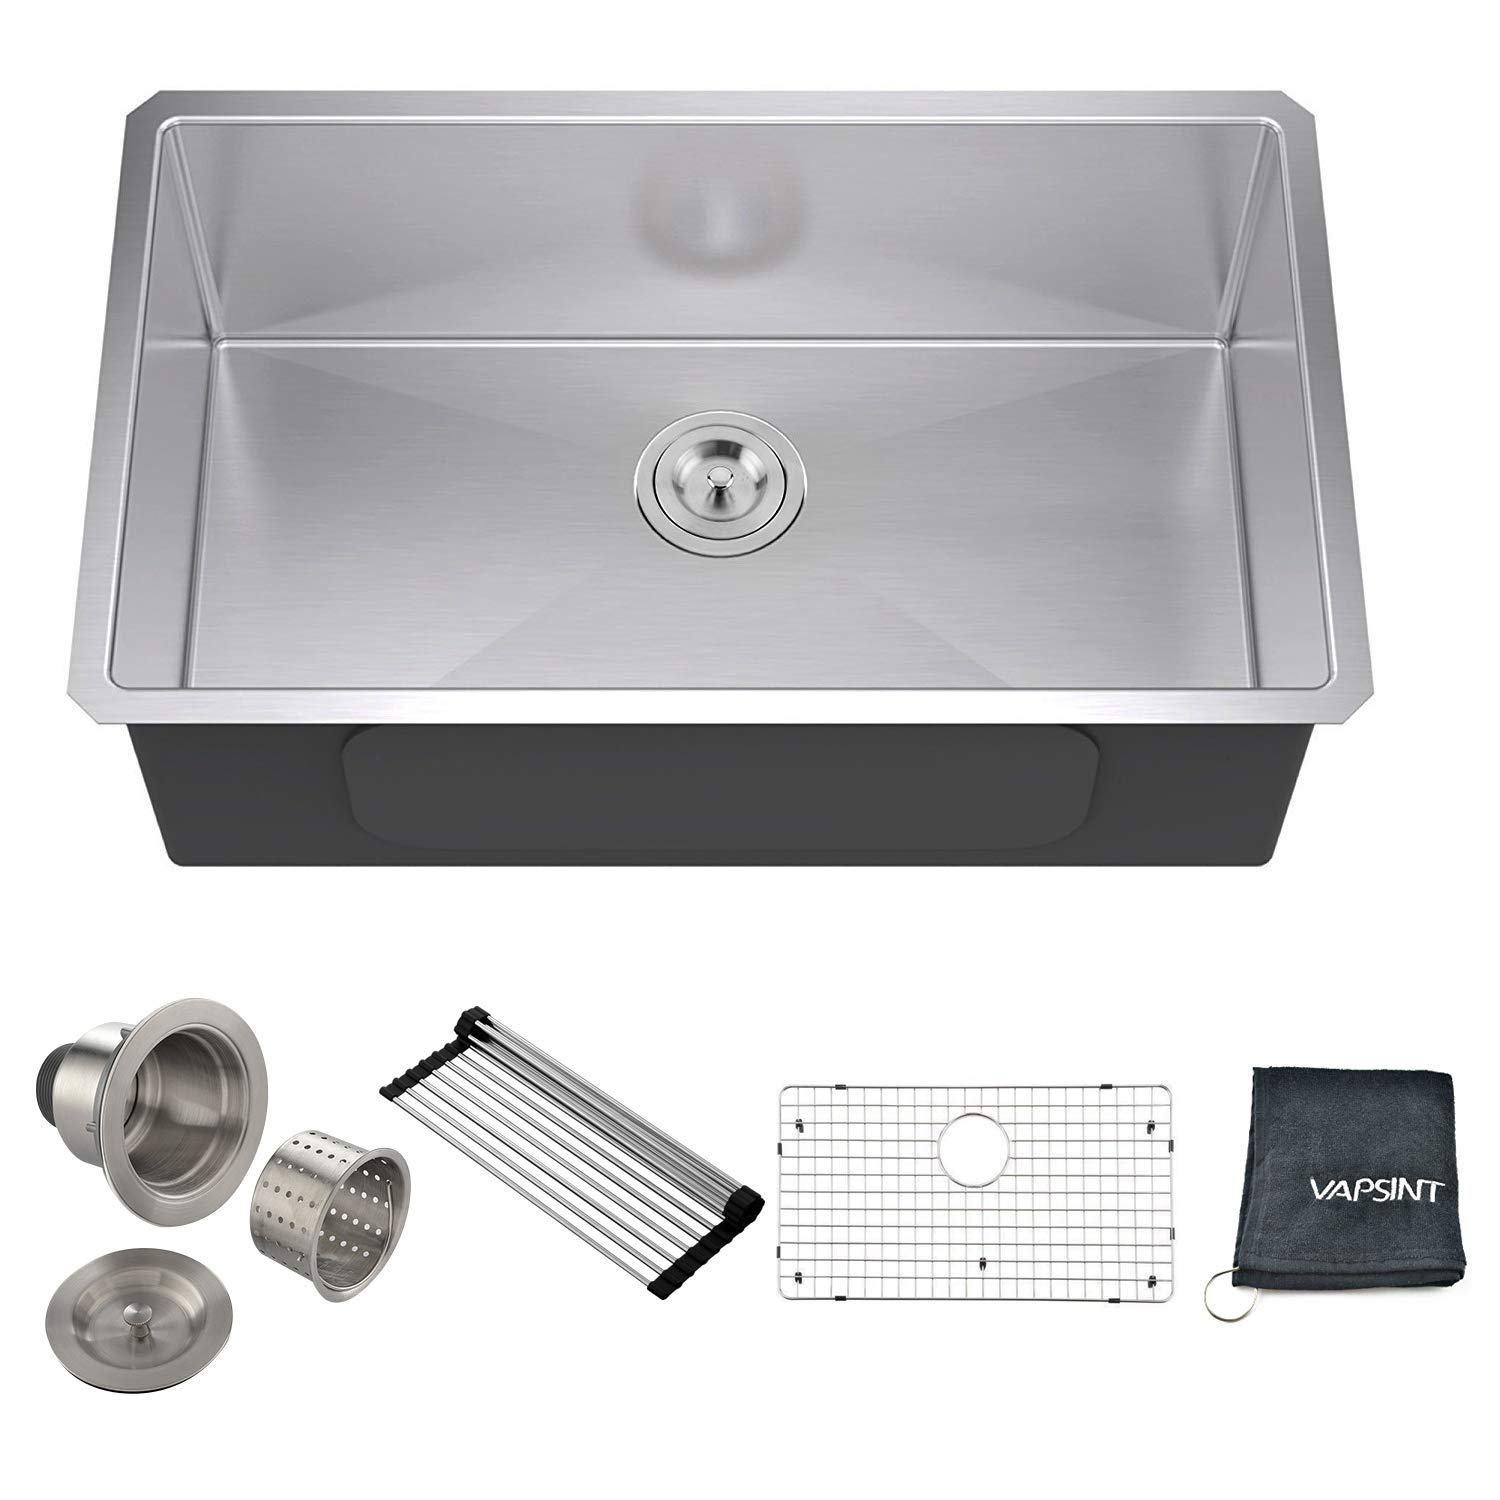 VAPSINT Commercial Real 18 Gauge 30 Inch Handmade Drop In Undermount Single Bowl Stainless Steel Kitchen Sinks, Complimentary Accessories